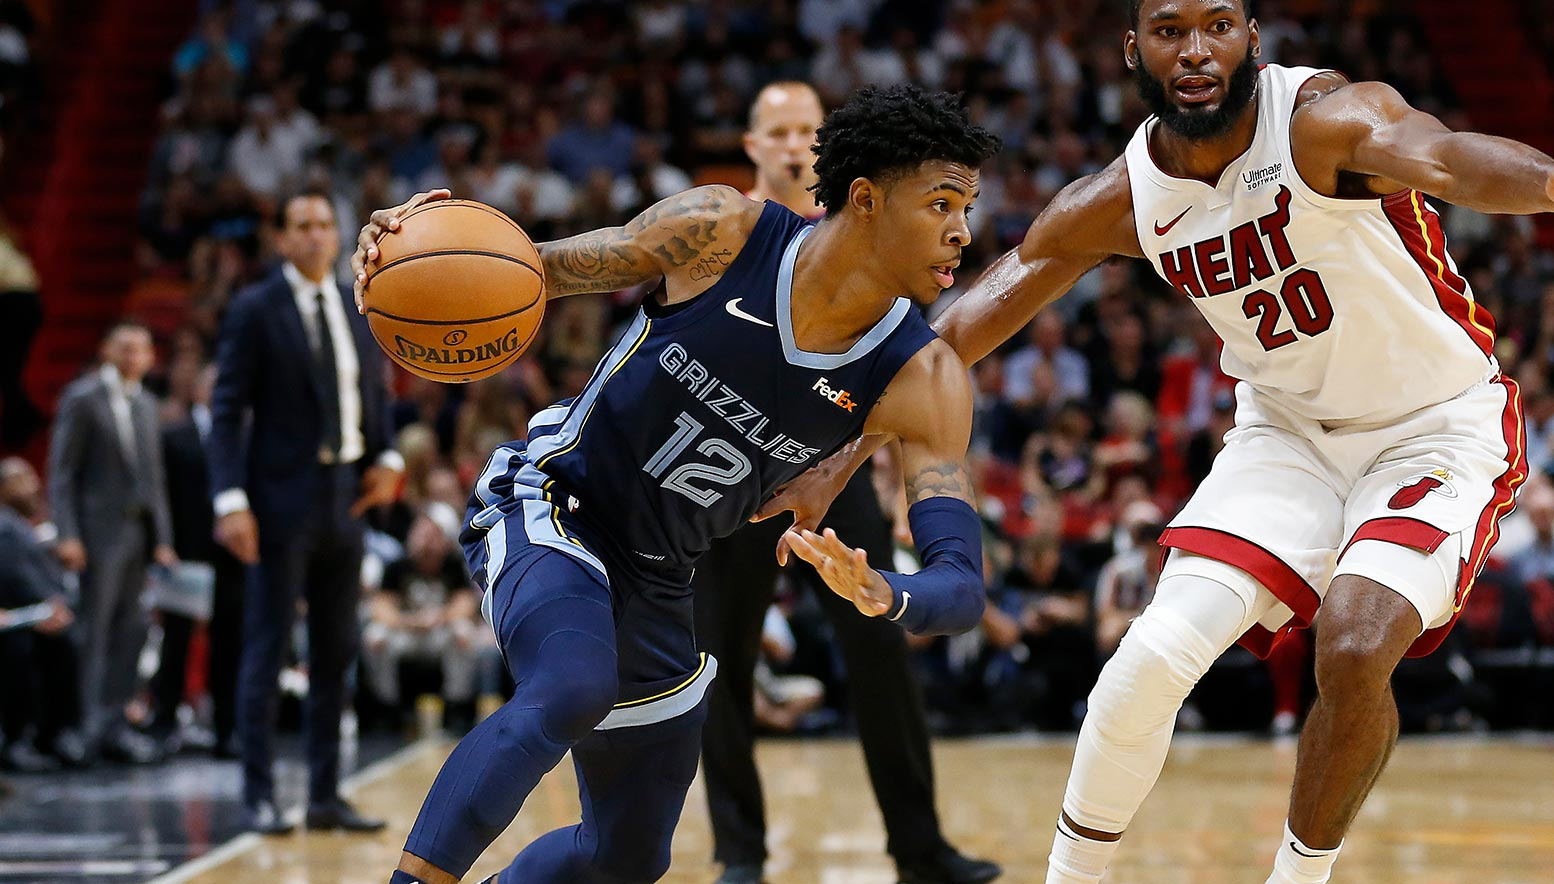 Ja Morant #12 of the Memphis Grizzlies drives to the basket against Justise Winslow #20 of the Miami Heat